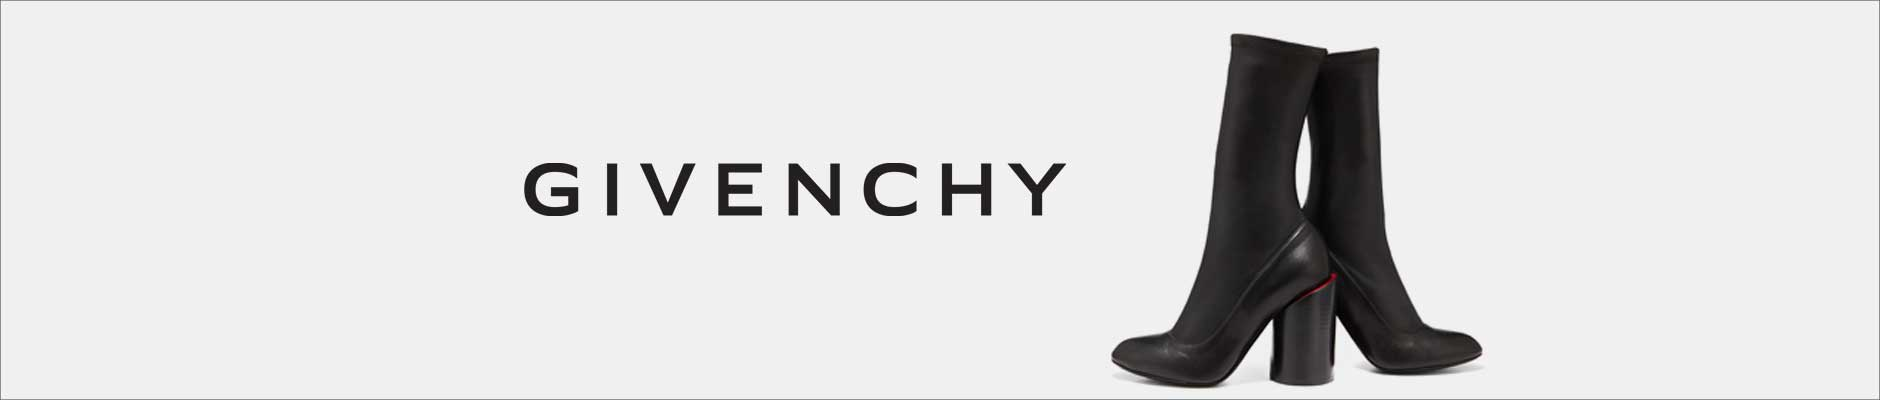 Givenchy Shoe